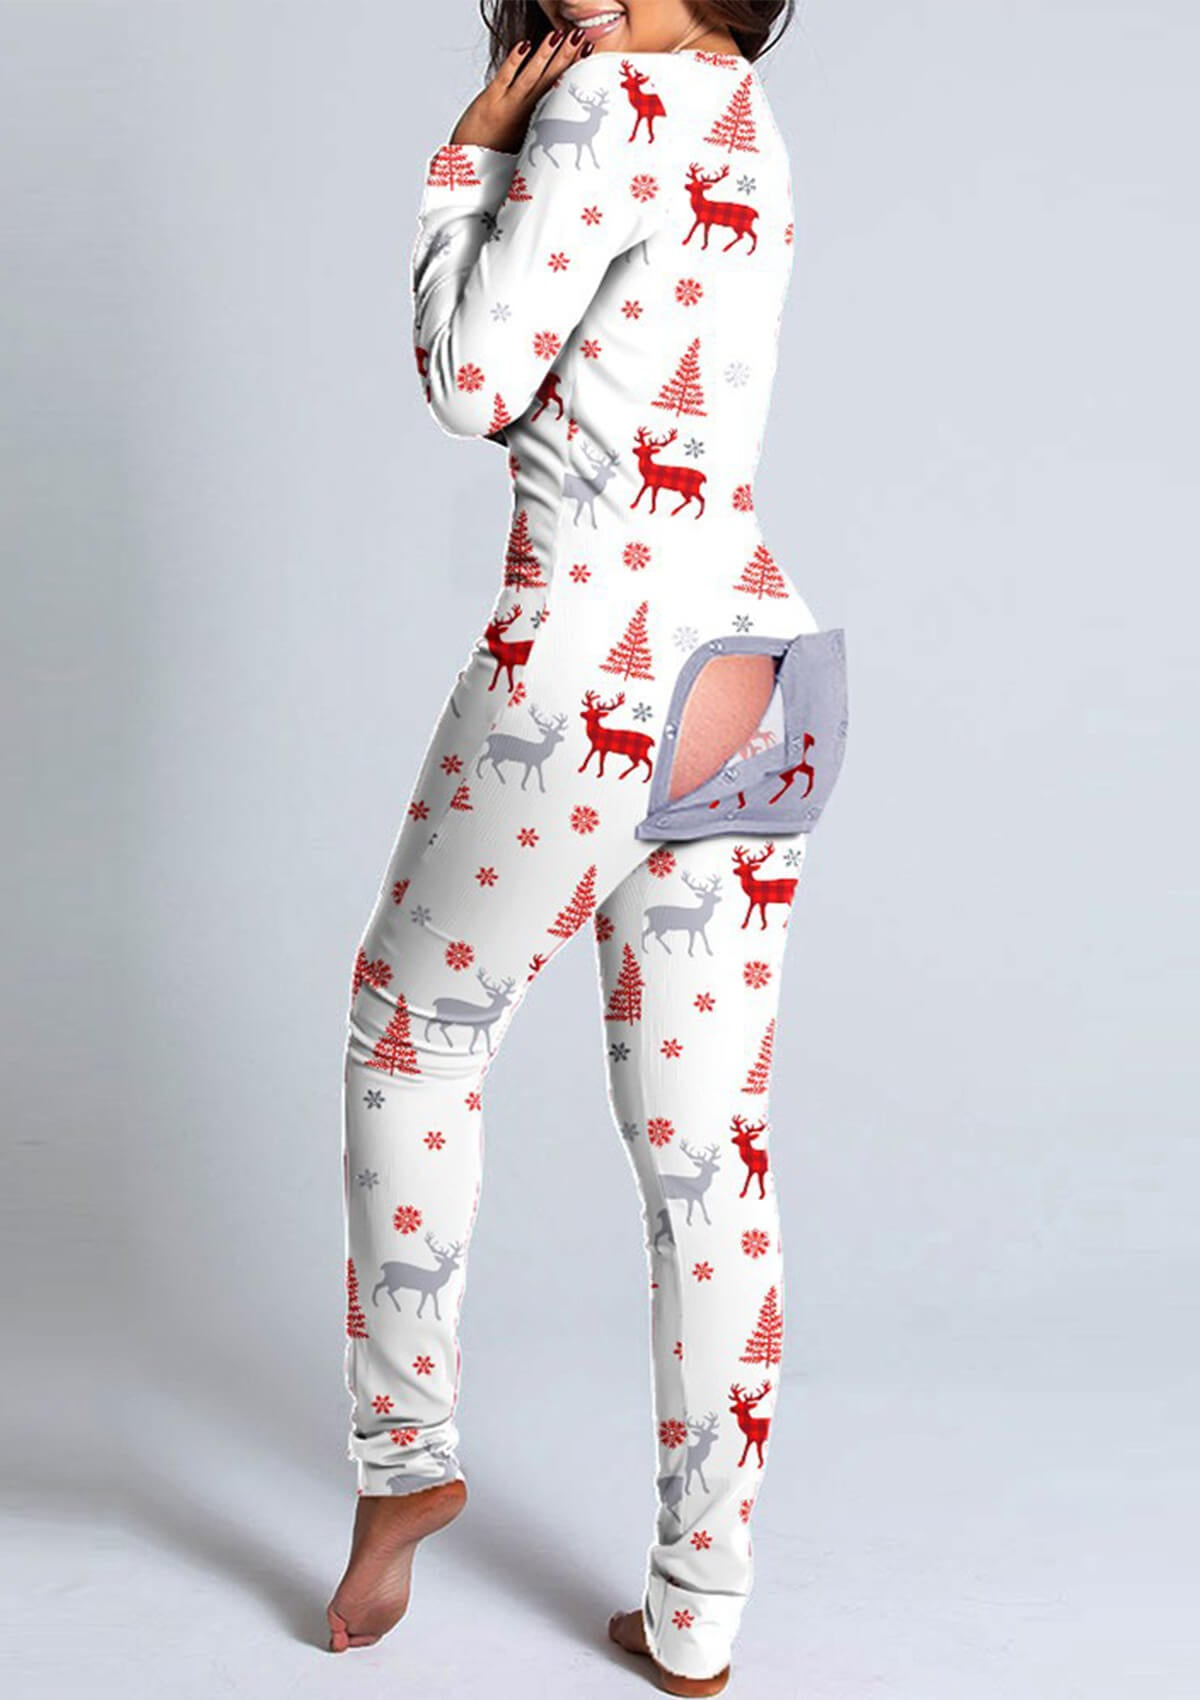 Chirstmas Functional Buttoned Flap Adults Pajamas